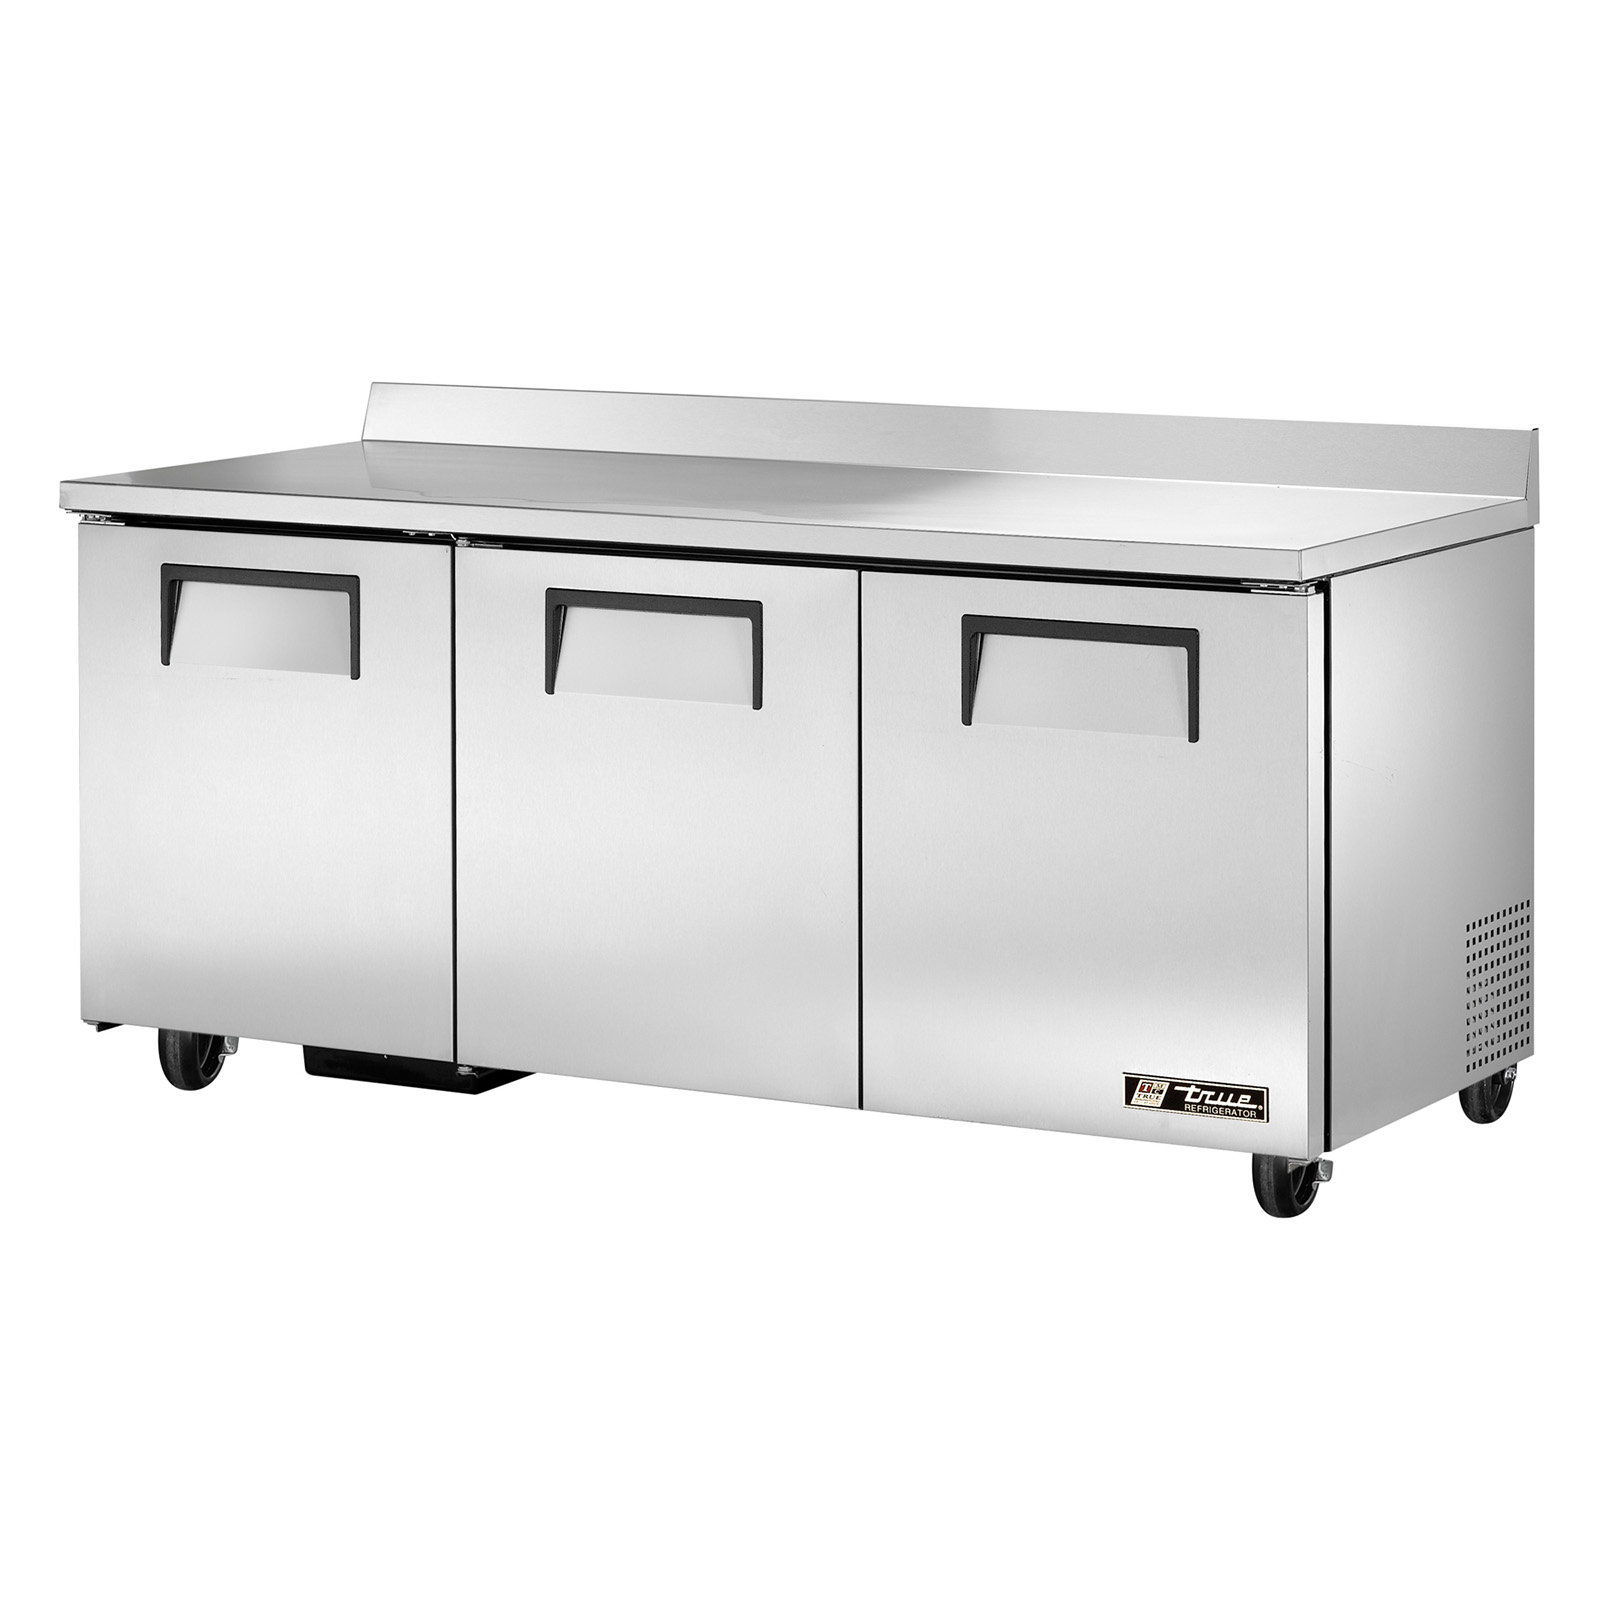 TWT-72 True - Work Top Refrigerator three-section